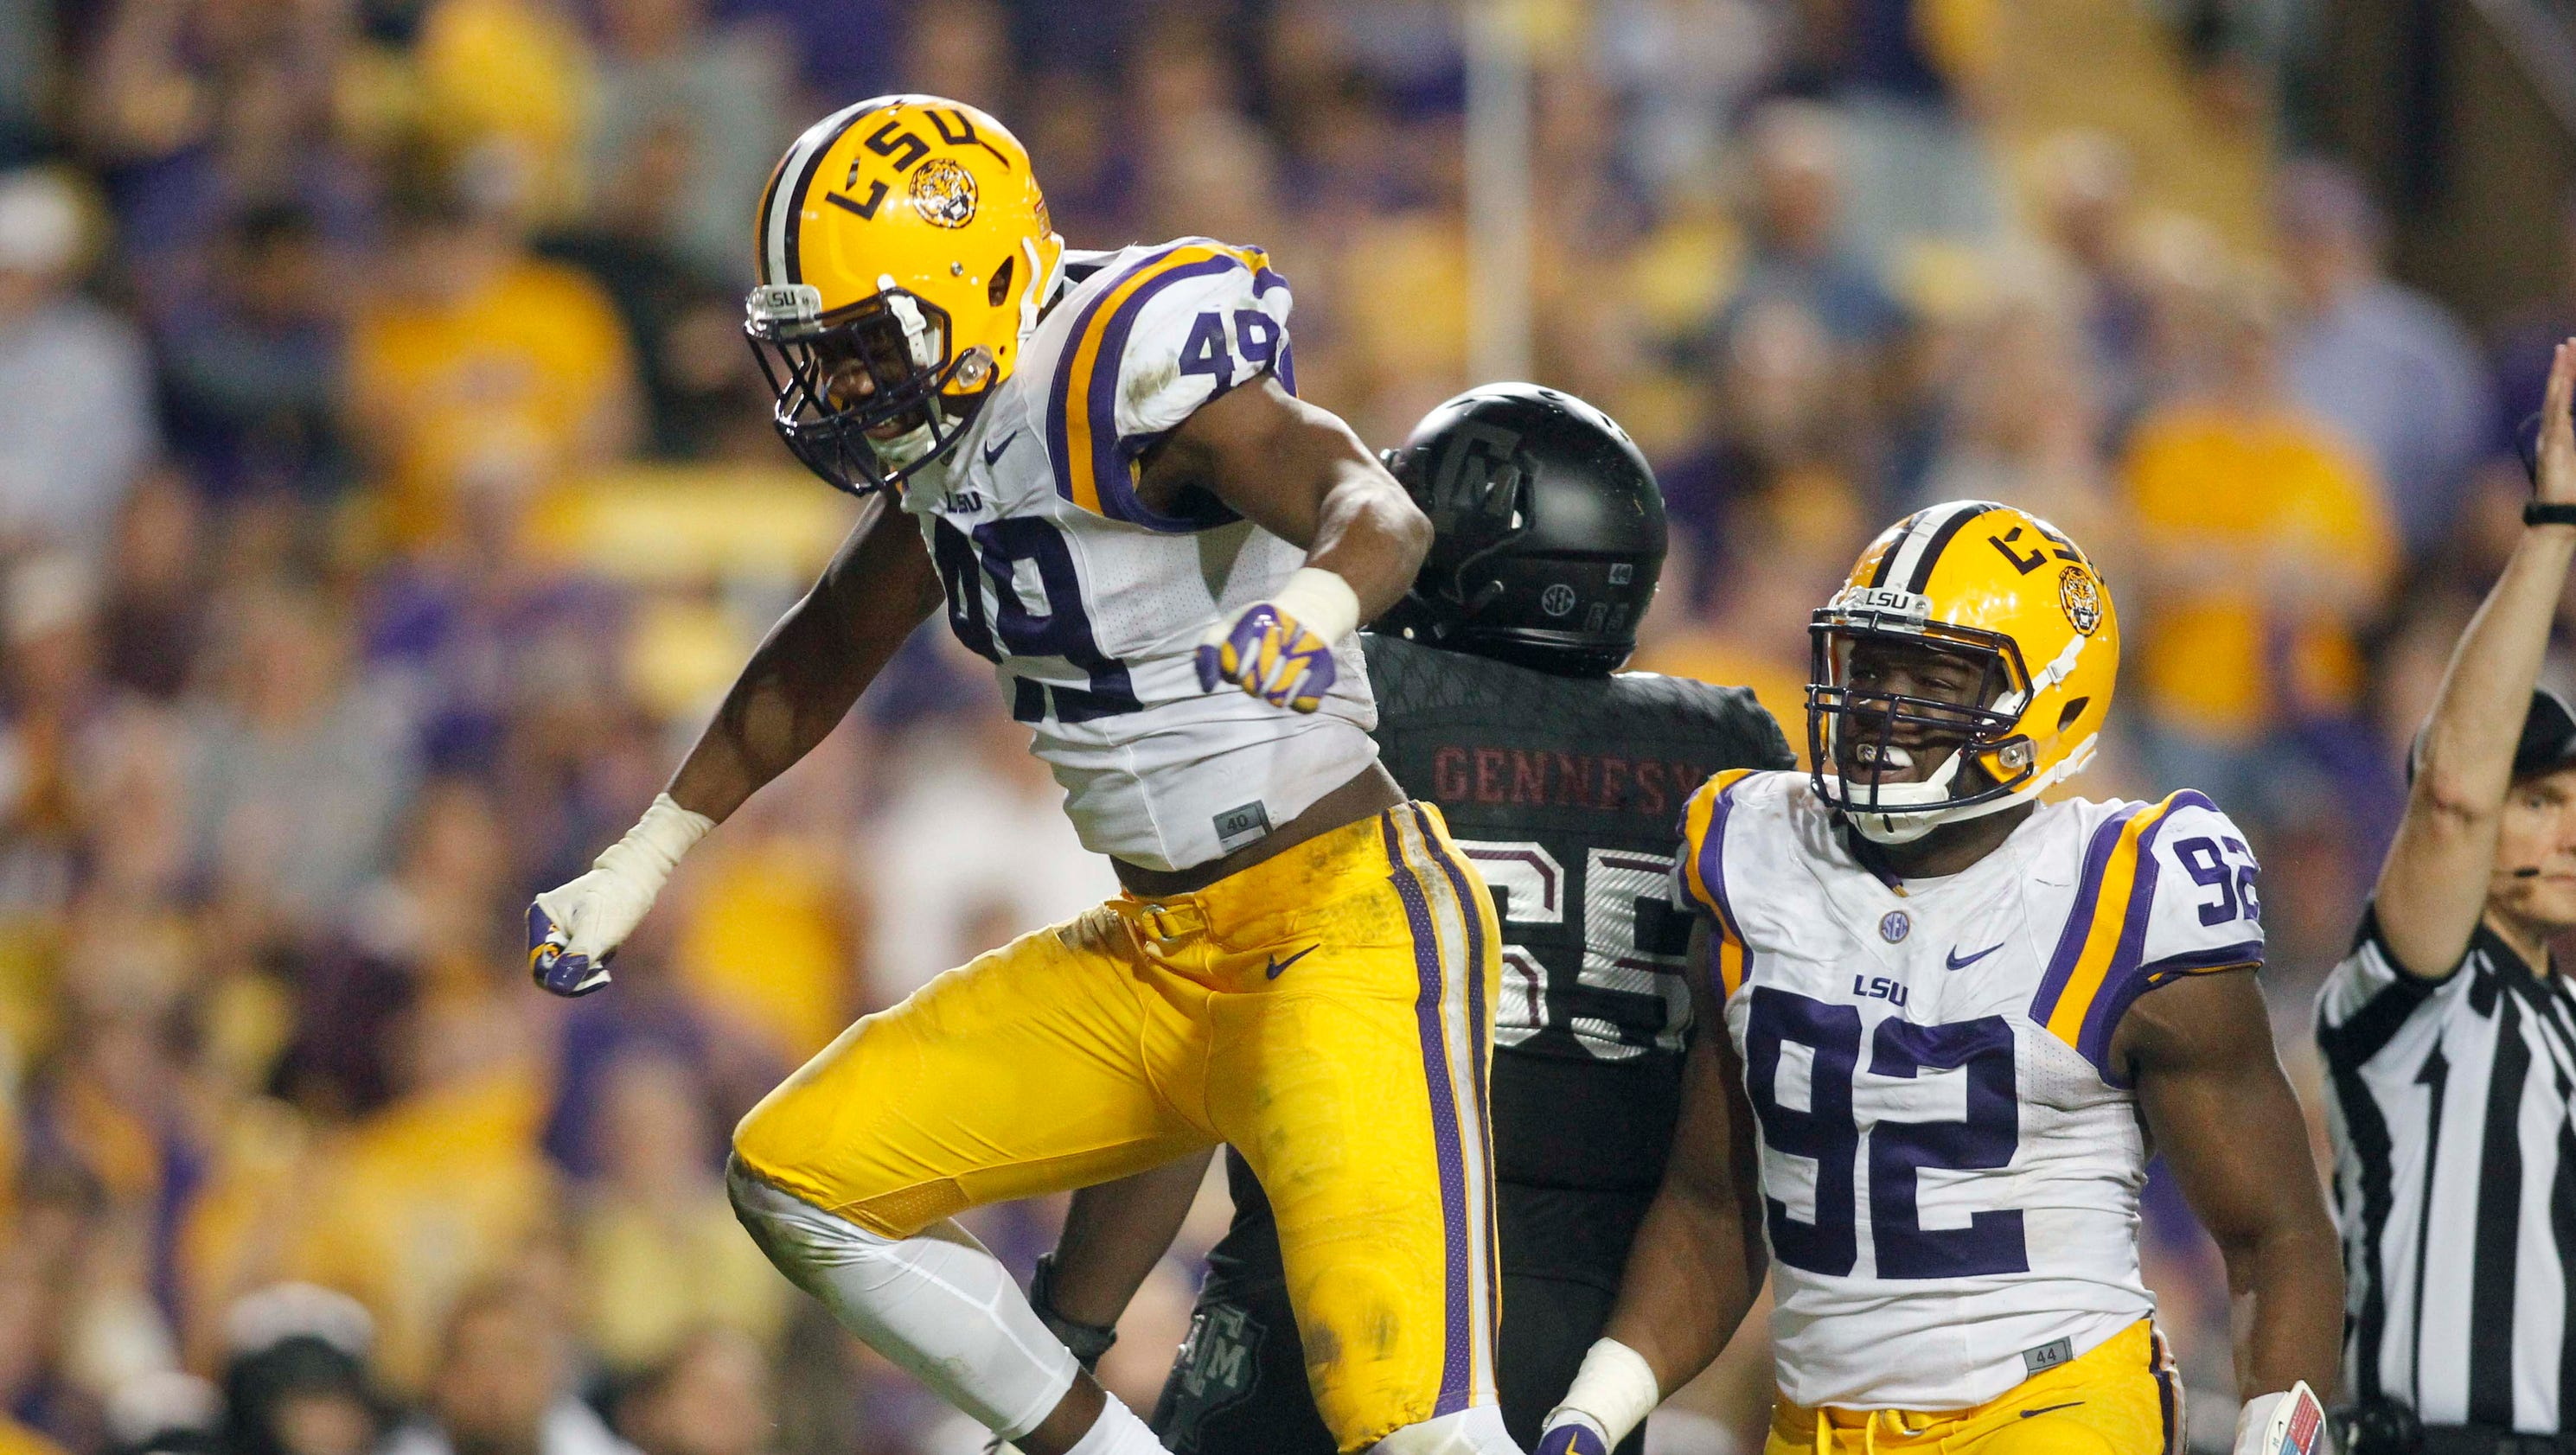 LSU defensive end Arden Key to take leave of absence